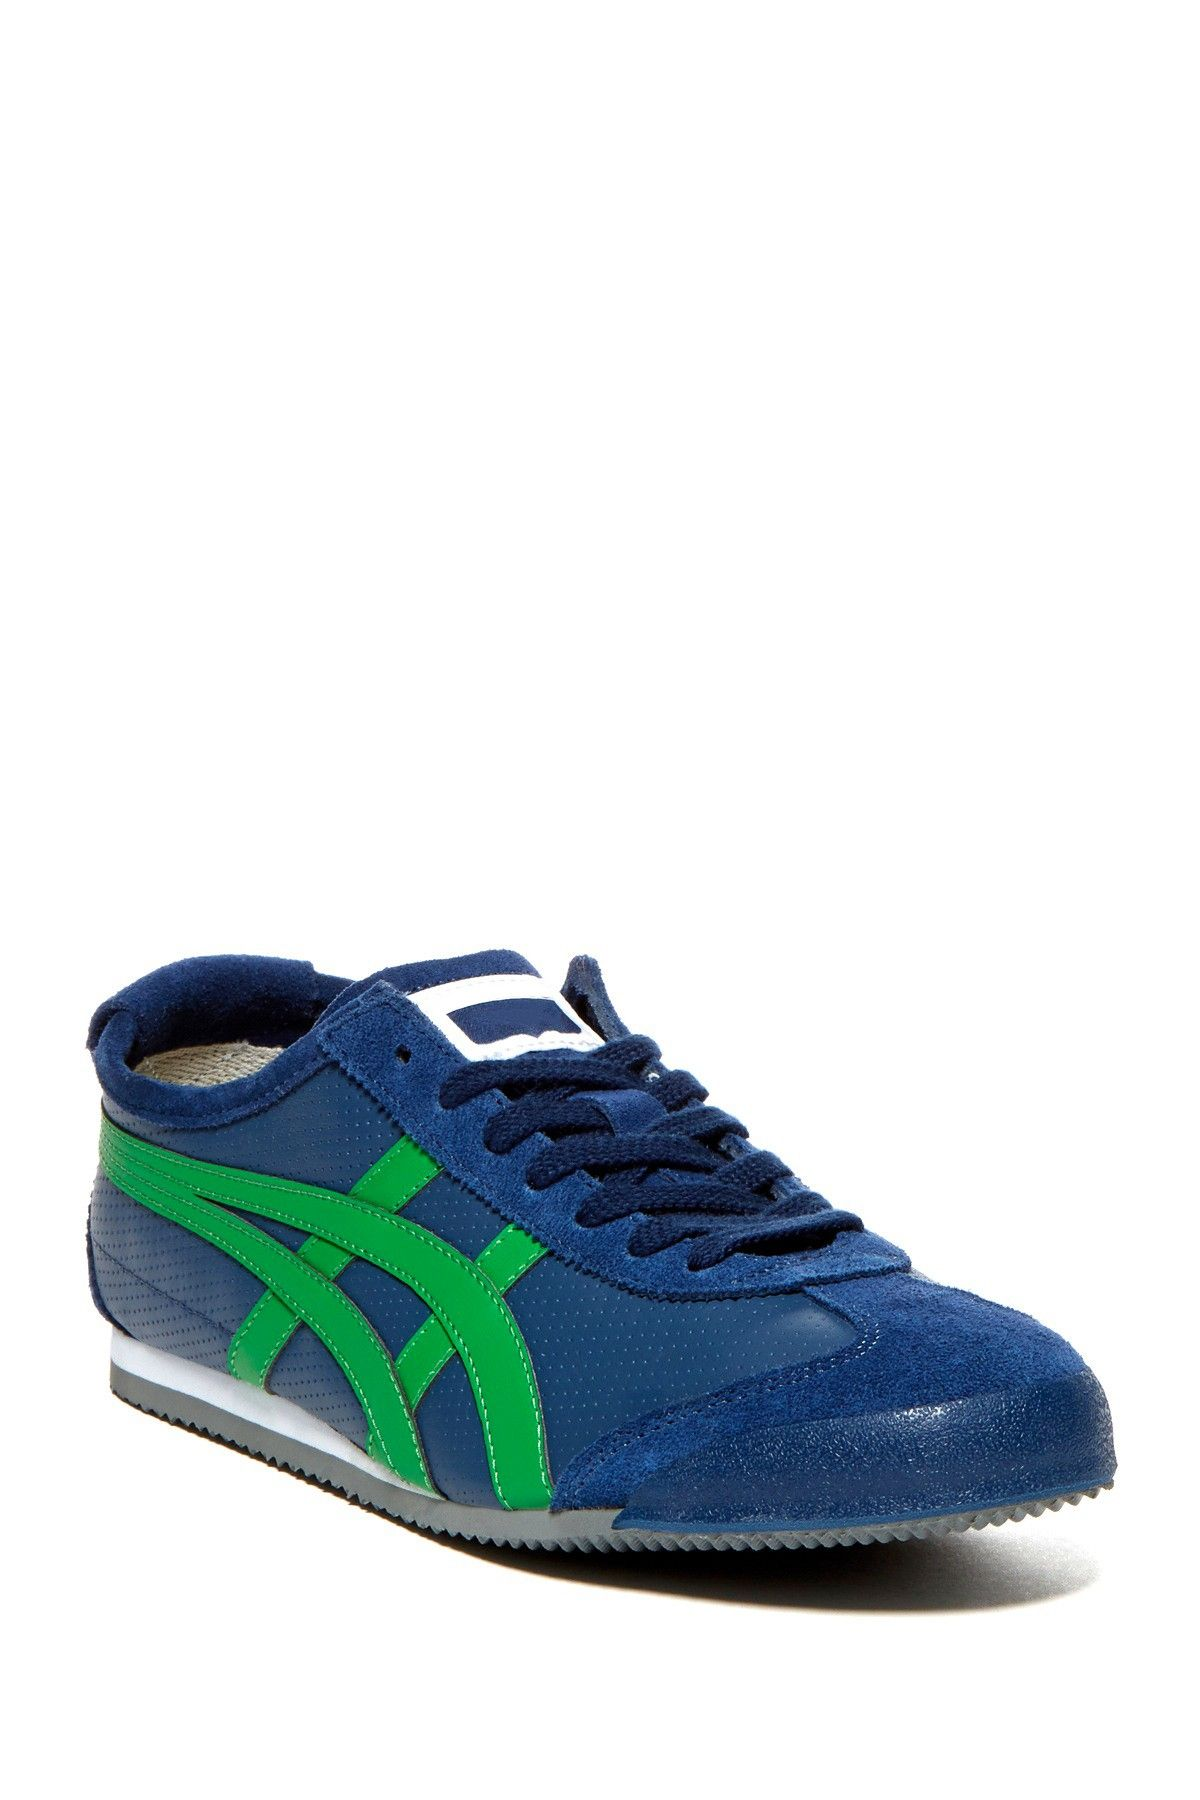 onitsuka tiger mexico 66 black blue usa green